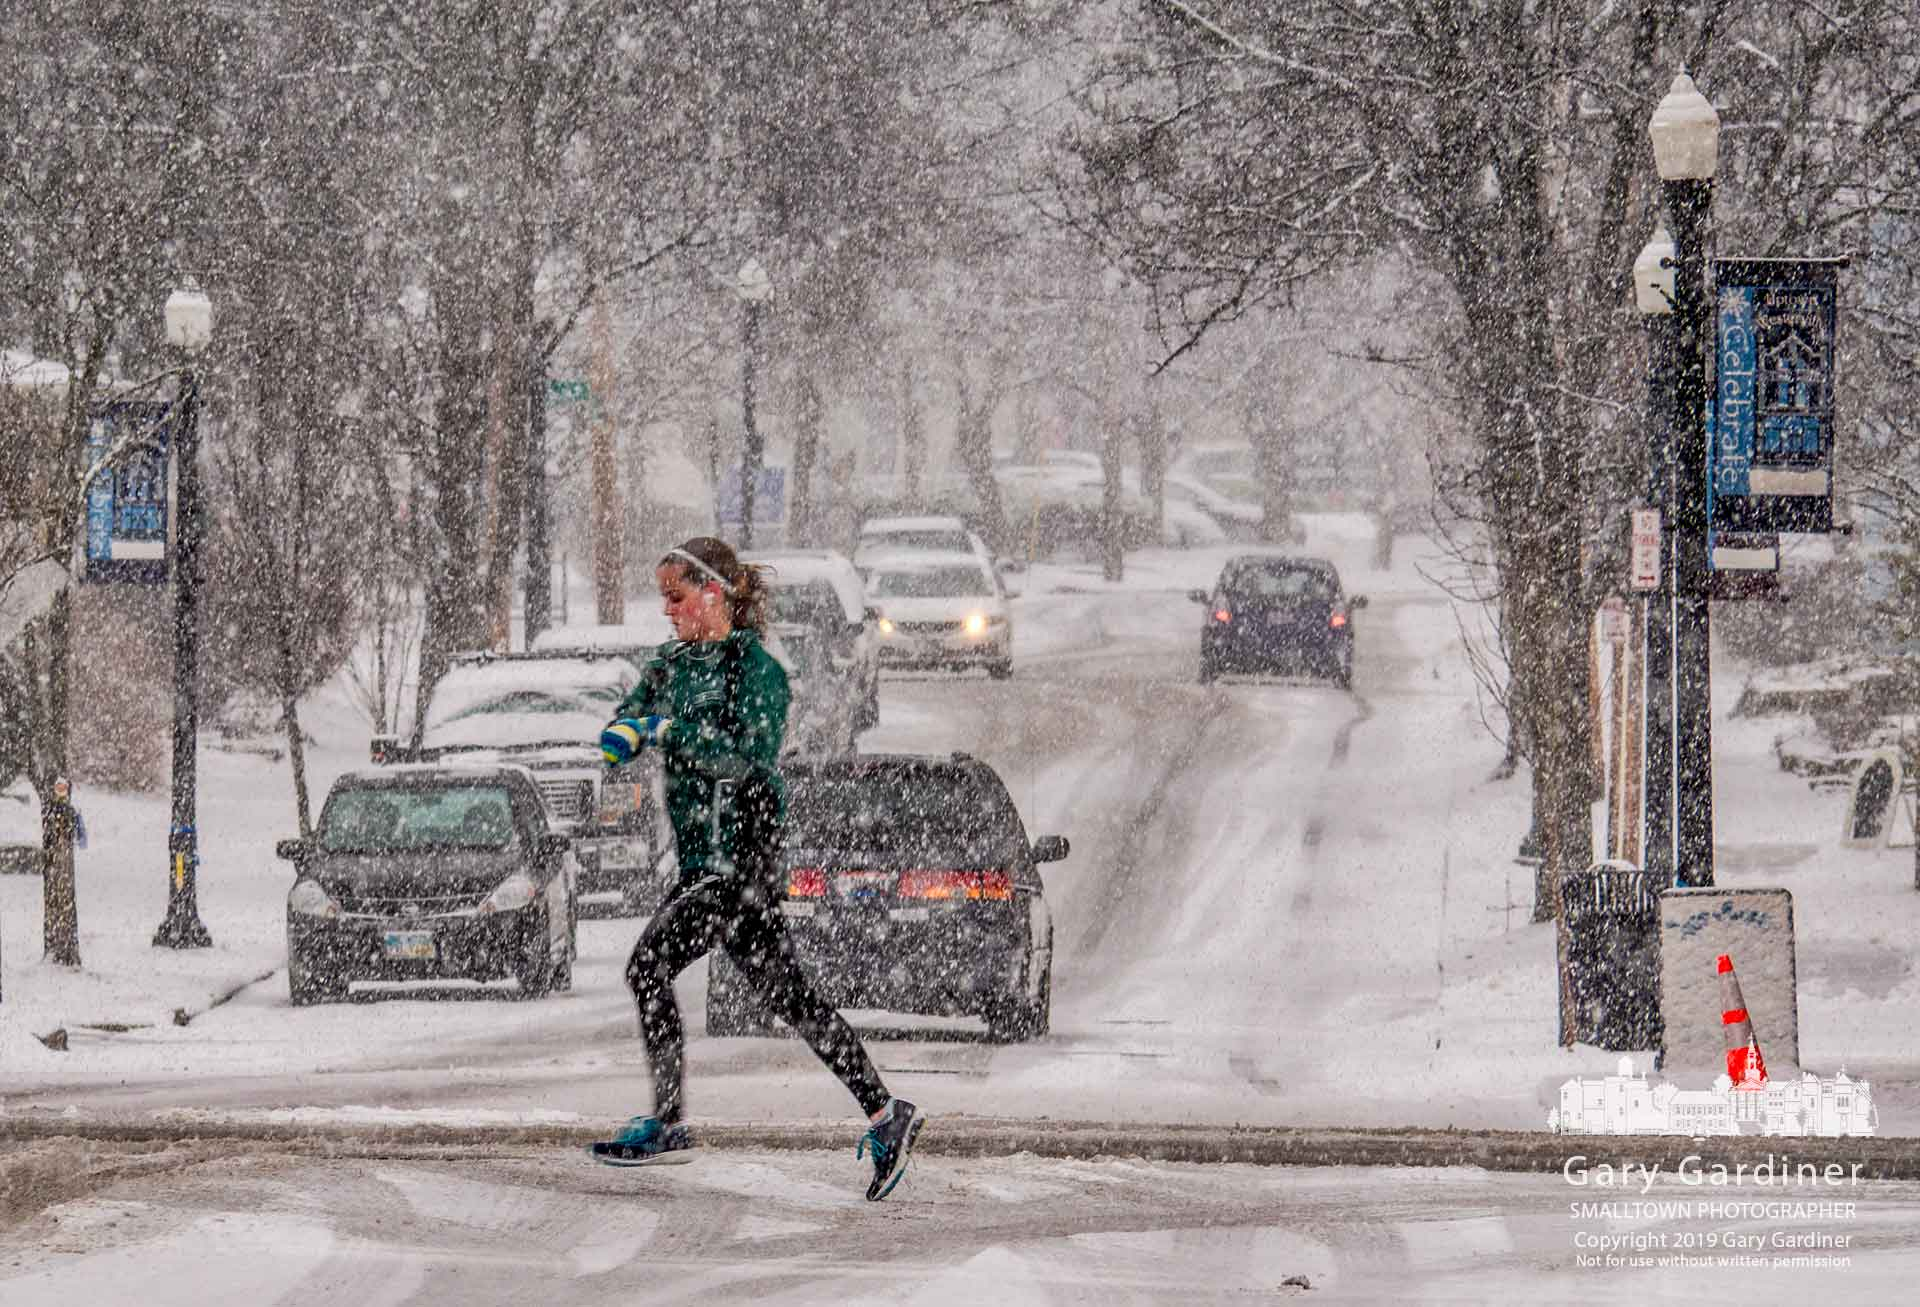 A woman checks her wrist as she crosses College Avenue in Uptown during an afternoon run during heavy snow on Sunday afternoon. My Final Photo for Feb. 10, 2019.